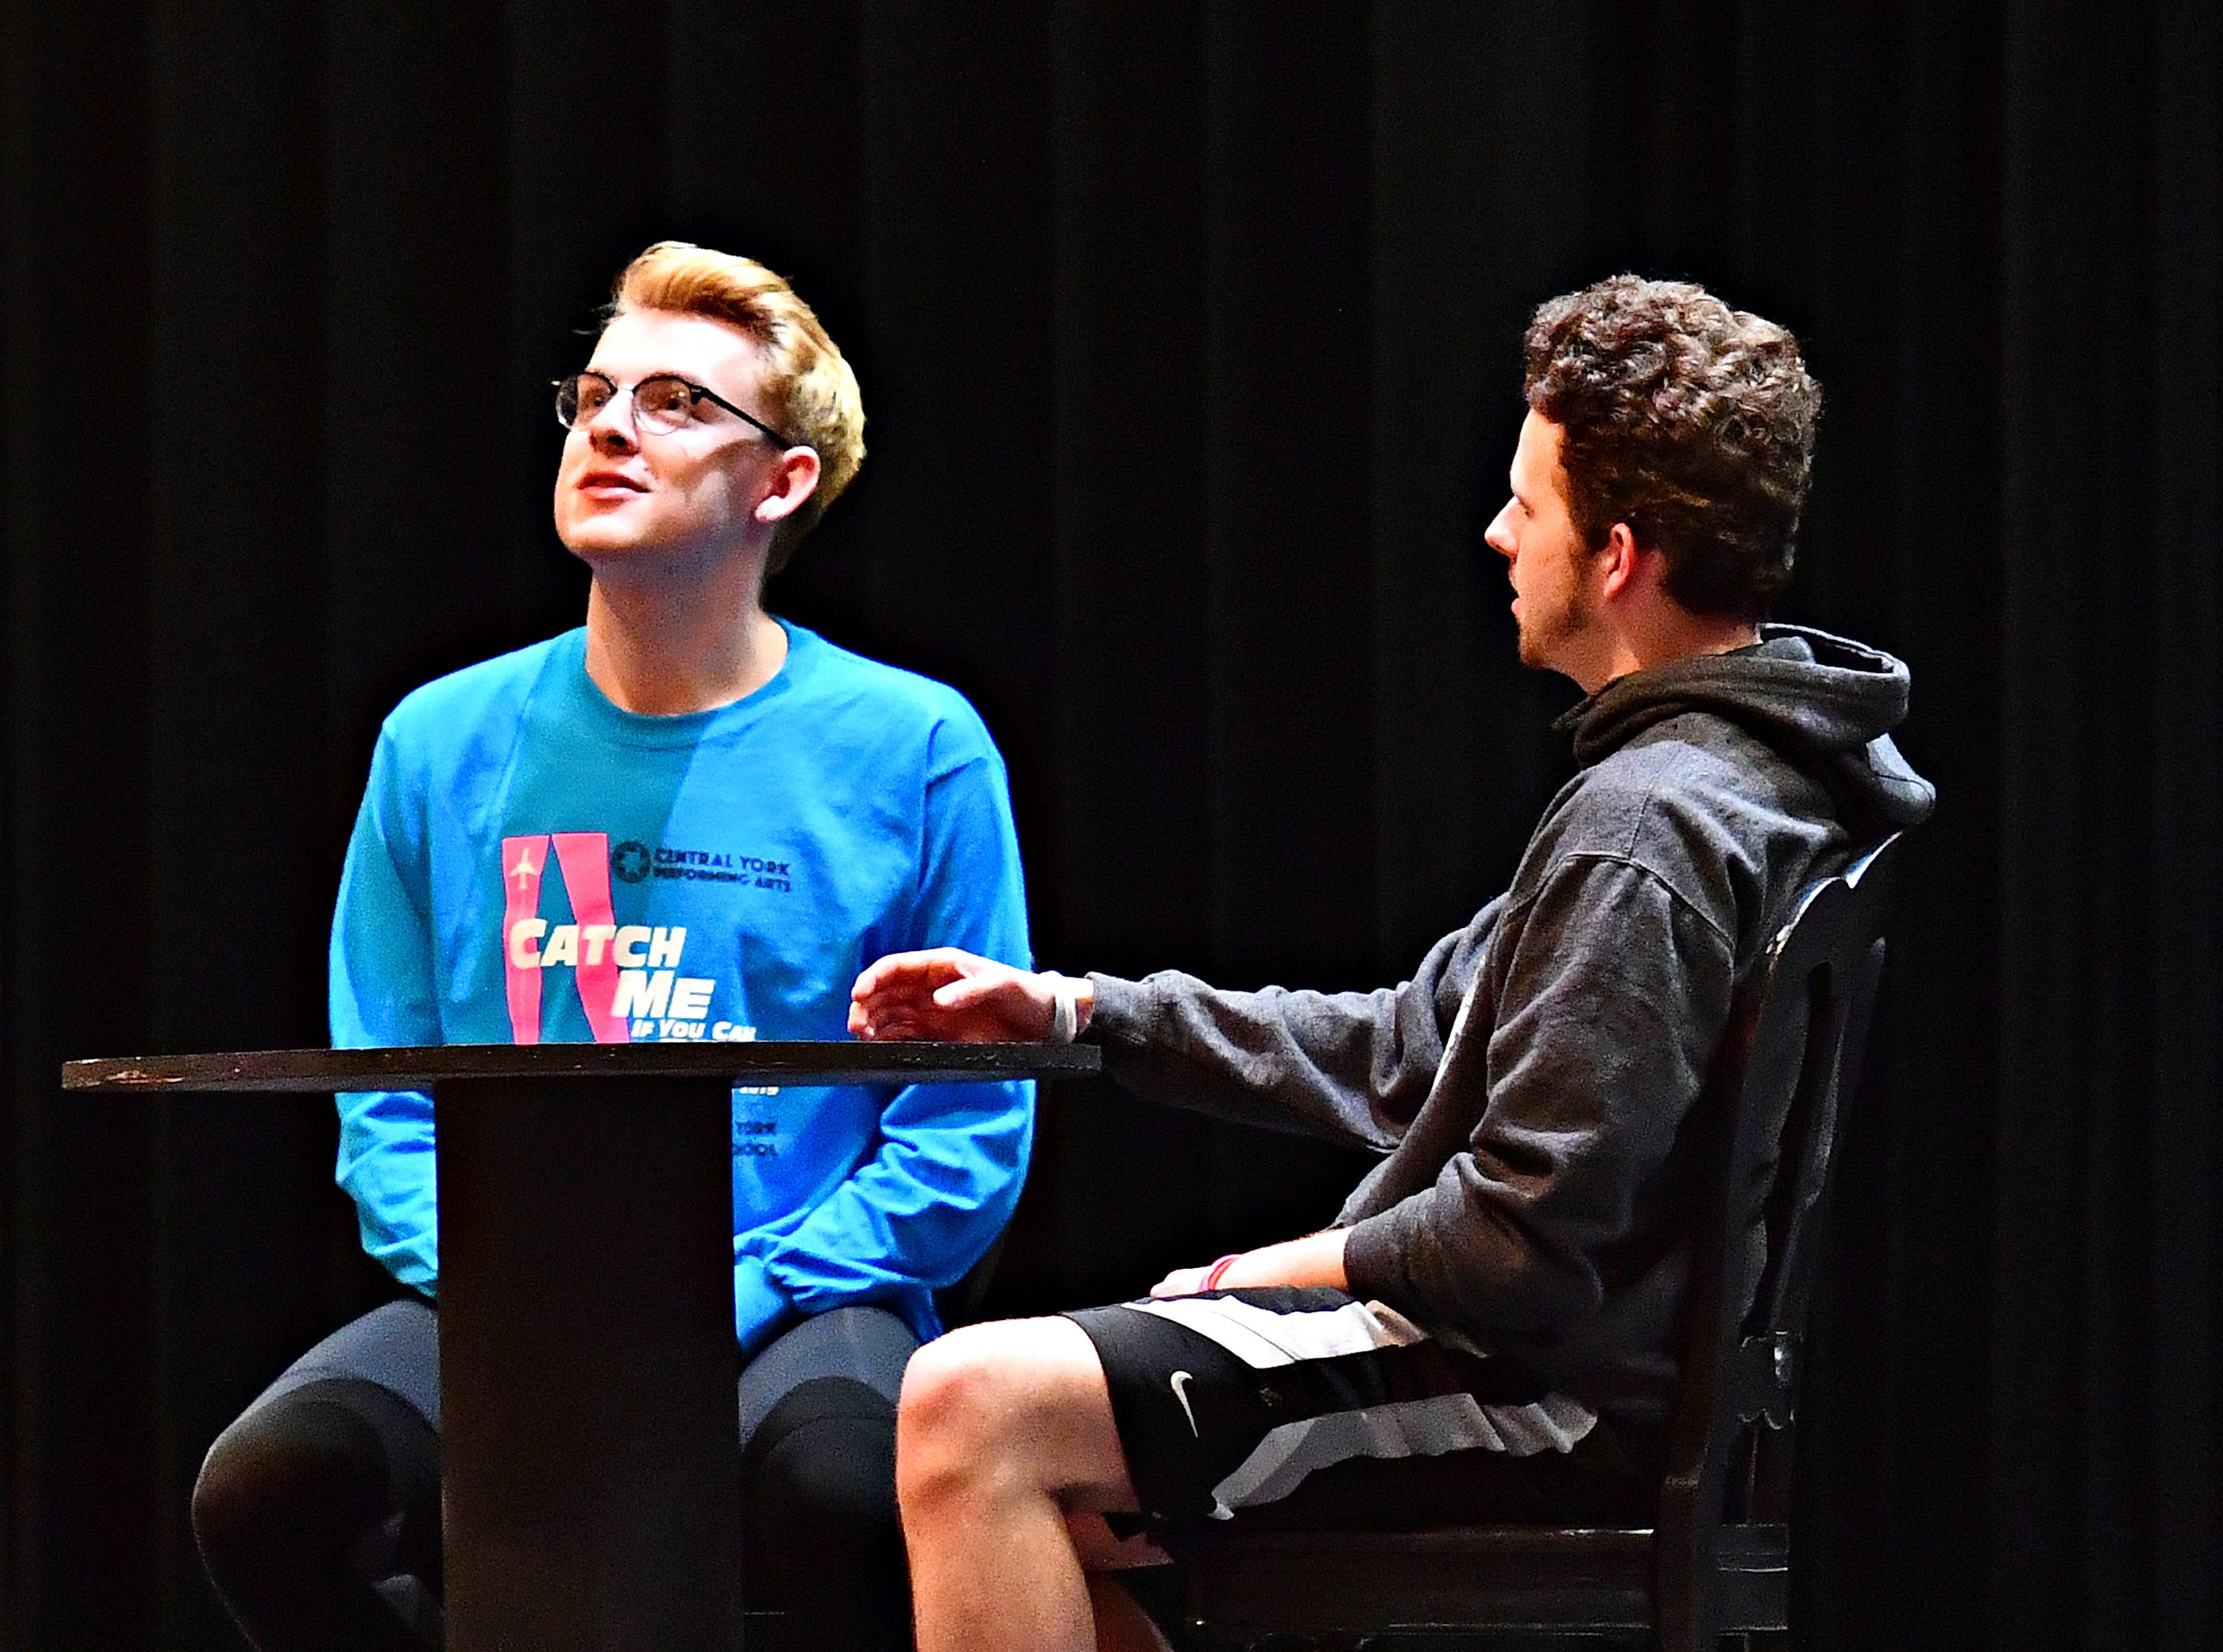 """Central York senior Koby Fink, left, plays Frank Abagnale, Jr., as students rehearse for their upcoming production of, """"Catch Me If You Can,"""" at Central York High School in Springettsbury Township, Wednesday, Feb. 6, 2019. Central York is the first York area school to perform the production Feb. 15-17. Dawn J. Sagert photo"""